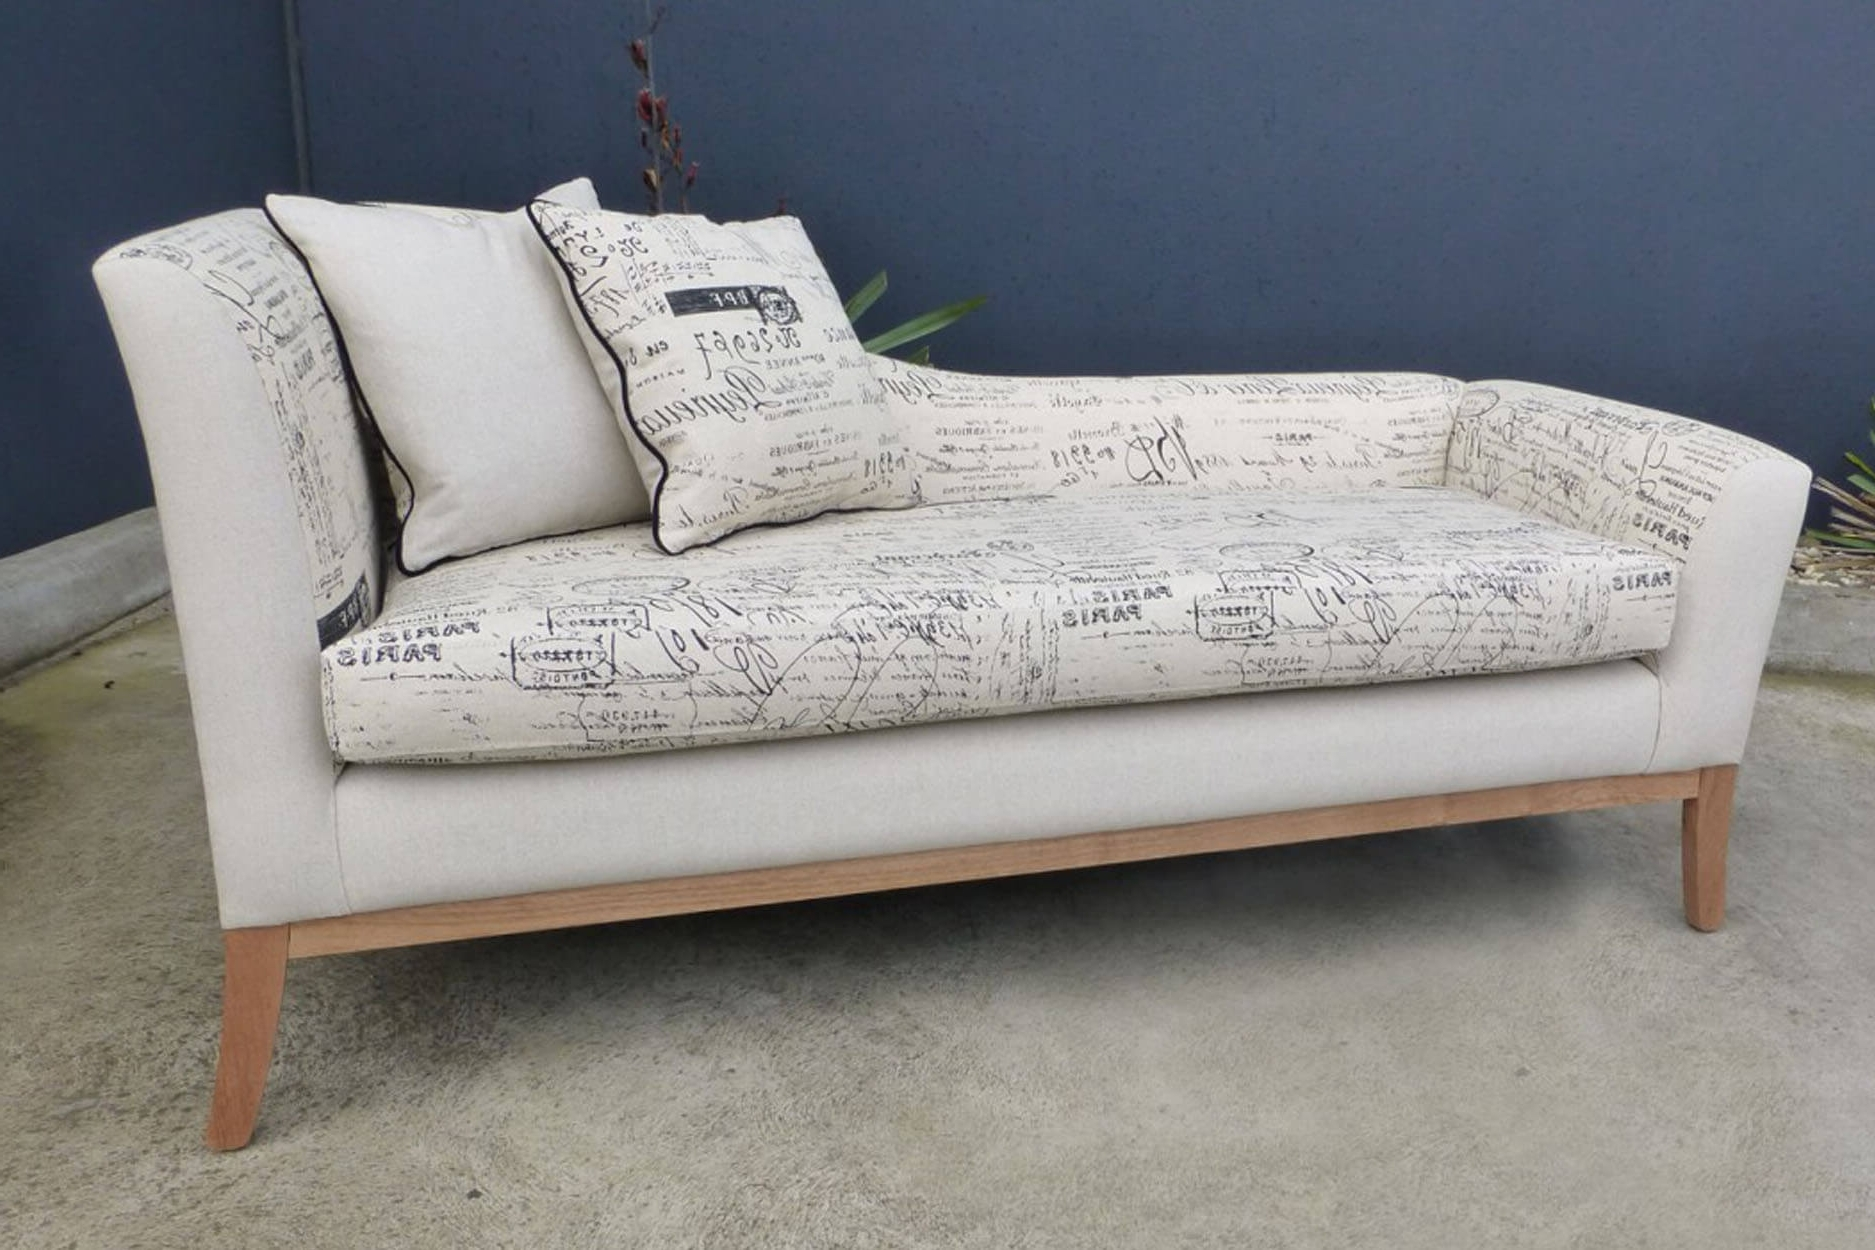 Modern Chaise Lounge With Script Fabric – Timeless Interior Designer With Regard To Fashionable Modern Chaise Lounges (View 6 of 15)